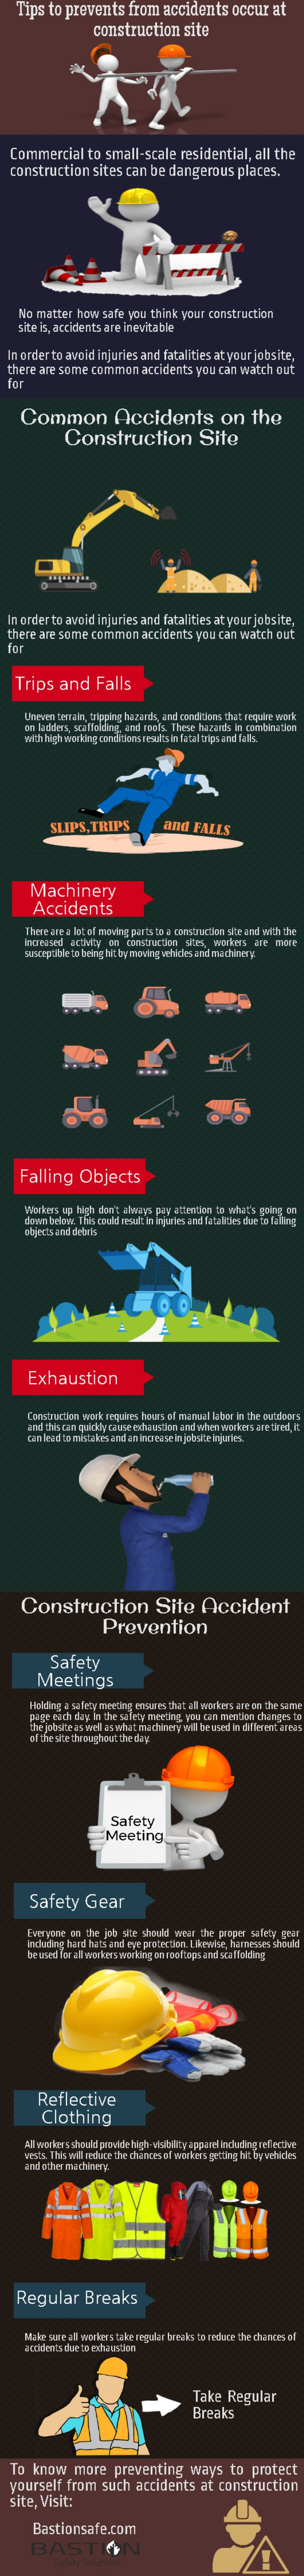 Tips to prevent from accidents occur at construction site #workplacesafety #oninesafetytraining